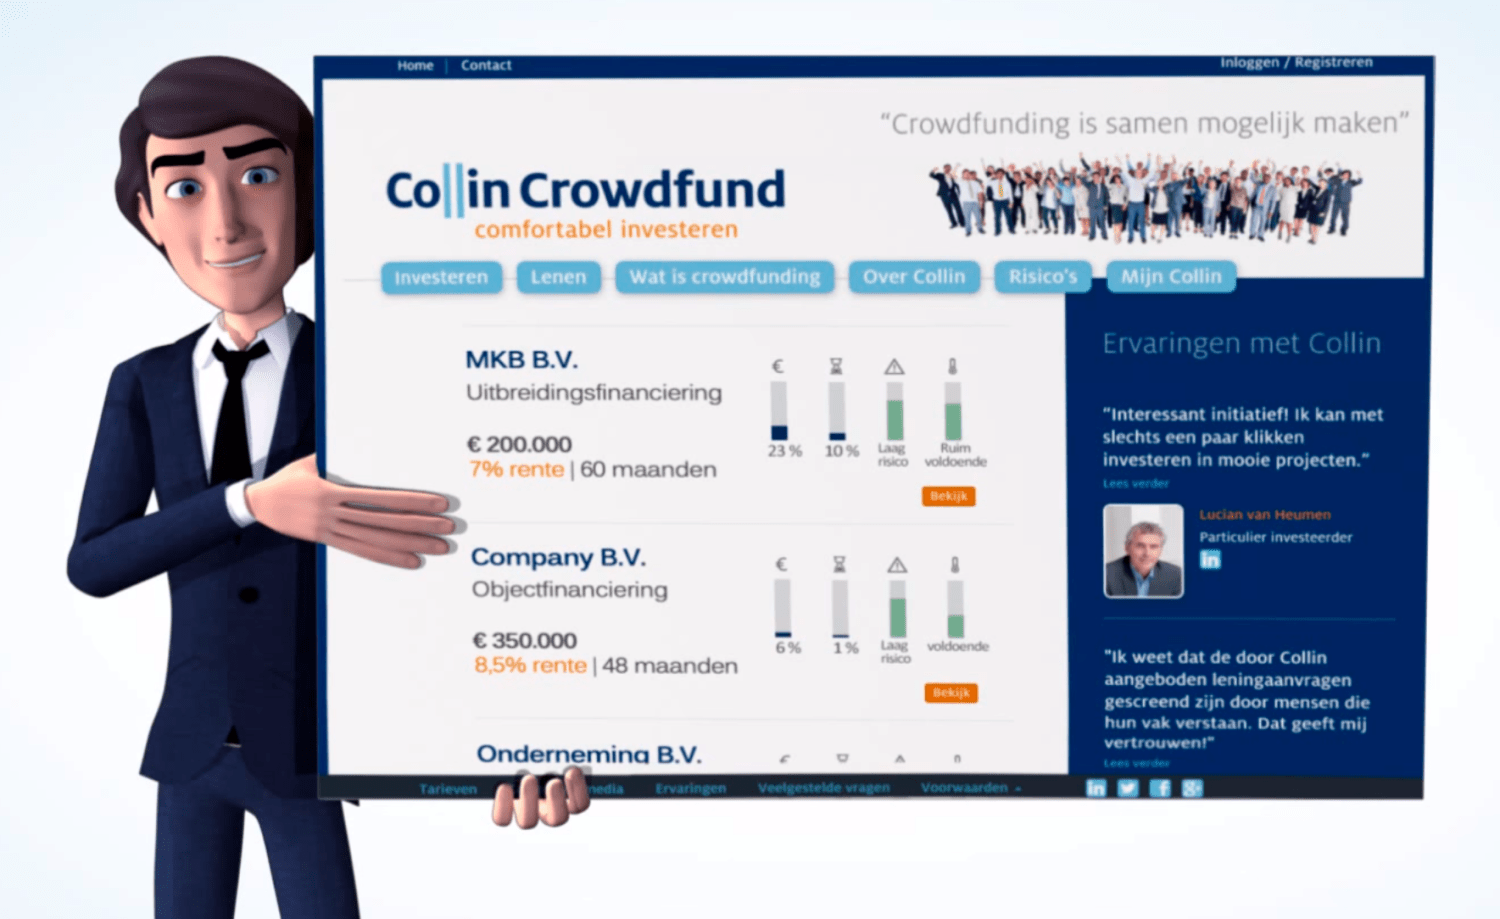 Collin Crowdfund crowdfunding financiering mkb finno